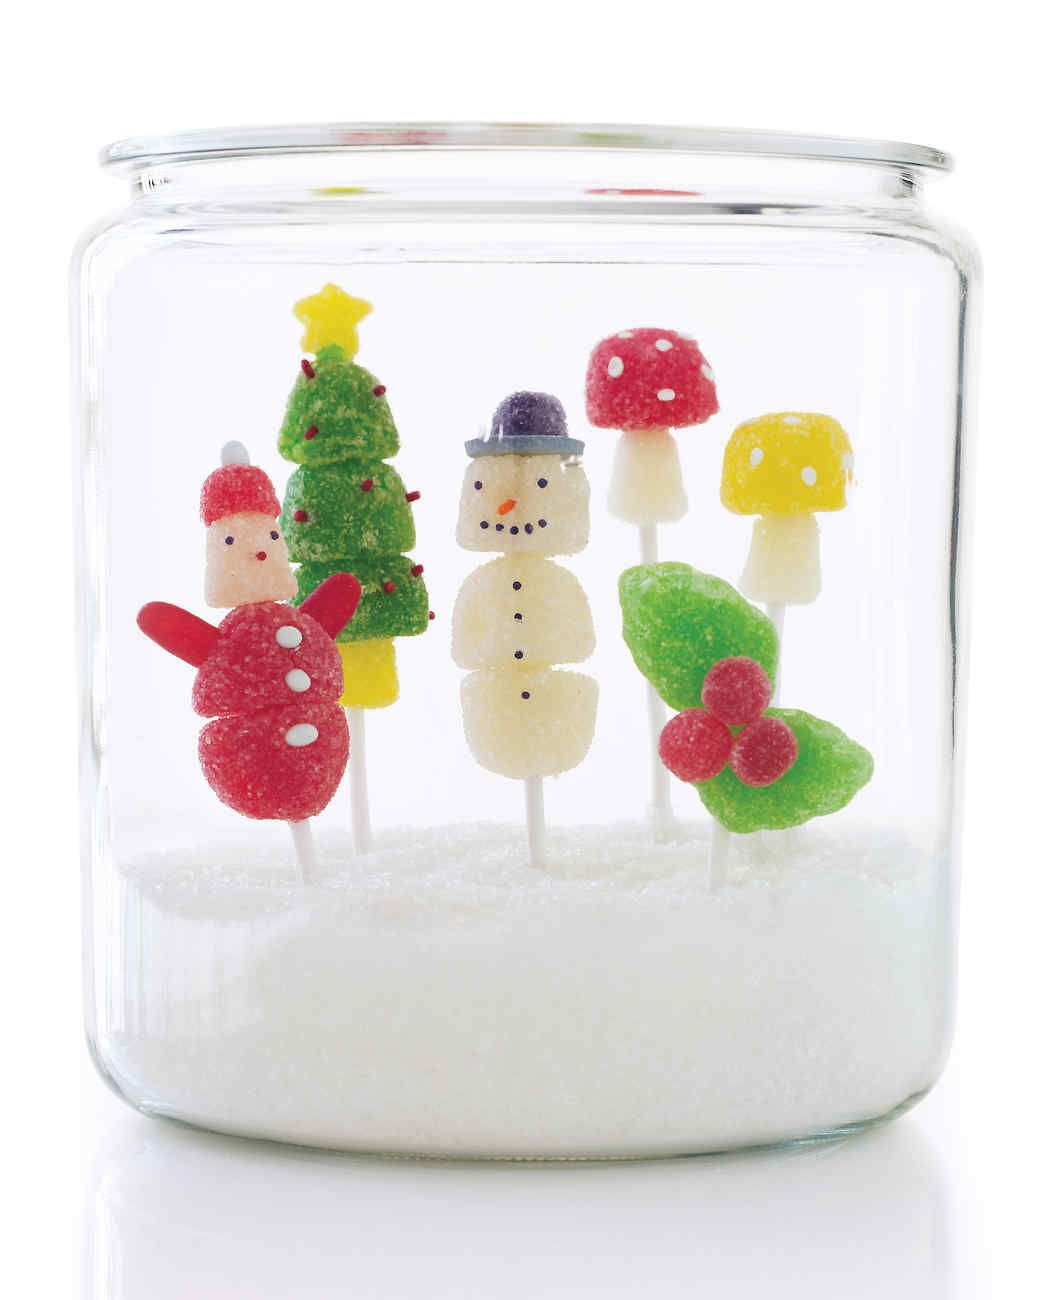 Gumdrop Pops in a Jar Homemade Christmas Gifts | Martha Stewart Living — Fill a large glass jar with sanding sugar, and place homemade figurines on flower frogs in the sparkling snow for a beautifully edible gift.